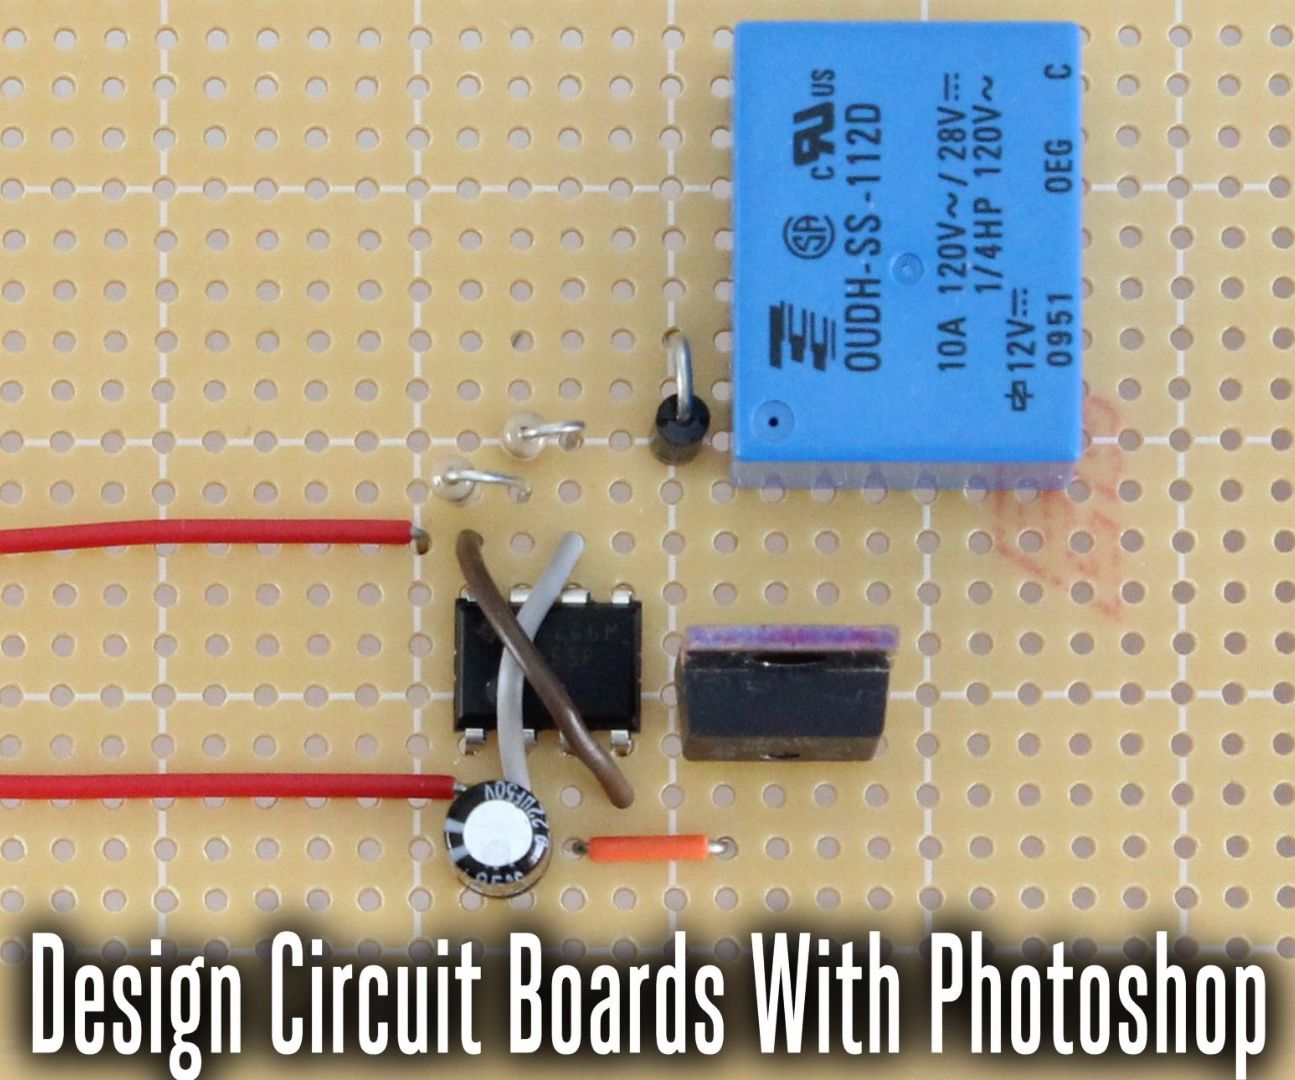 Design Circuit Boards Using Photoshop 10 Steps With Pictures Layer Board Maker For Micro Pcb Camera Buy